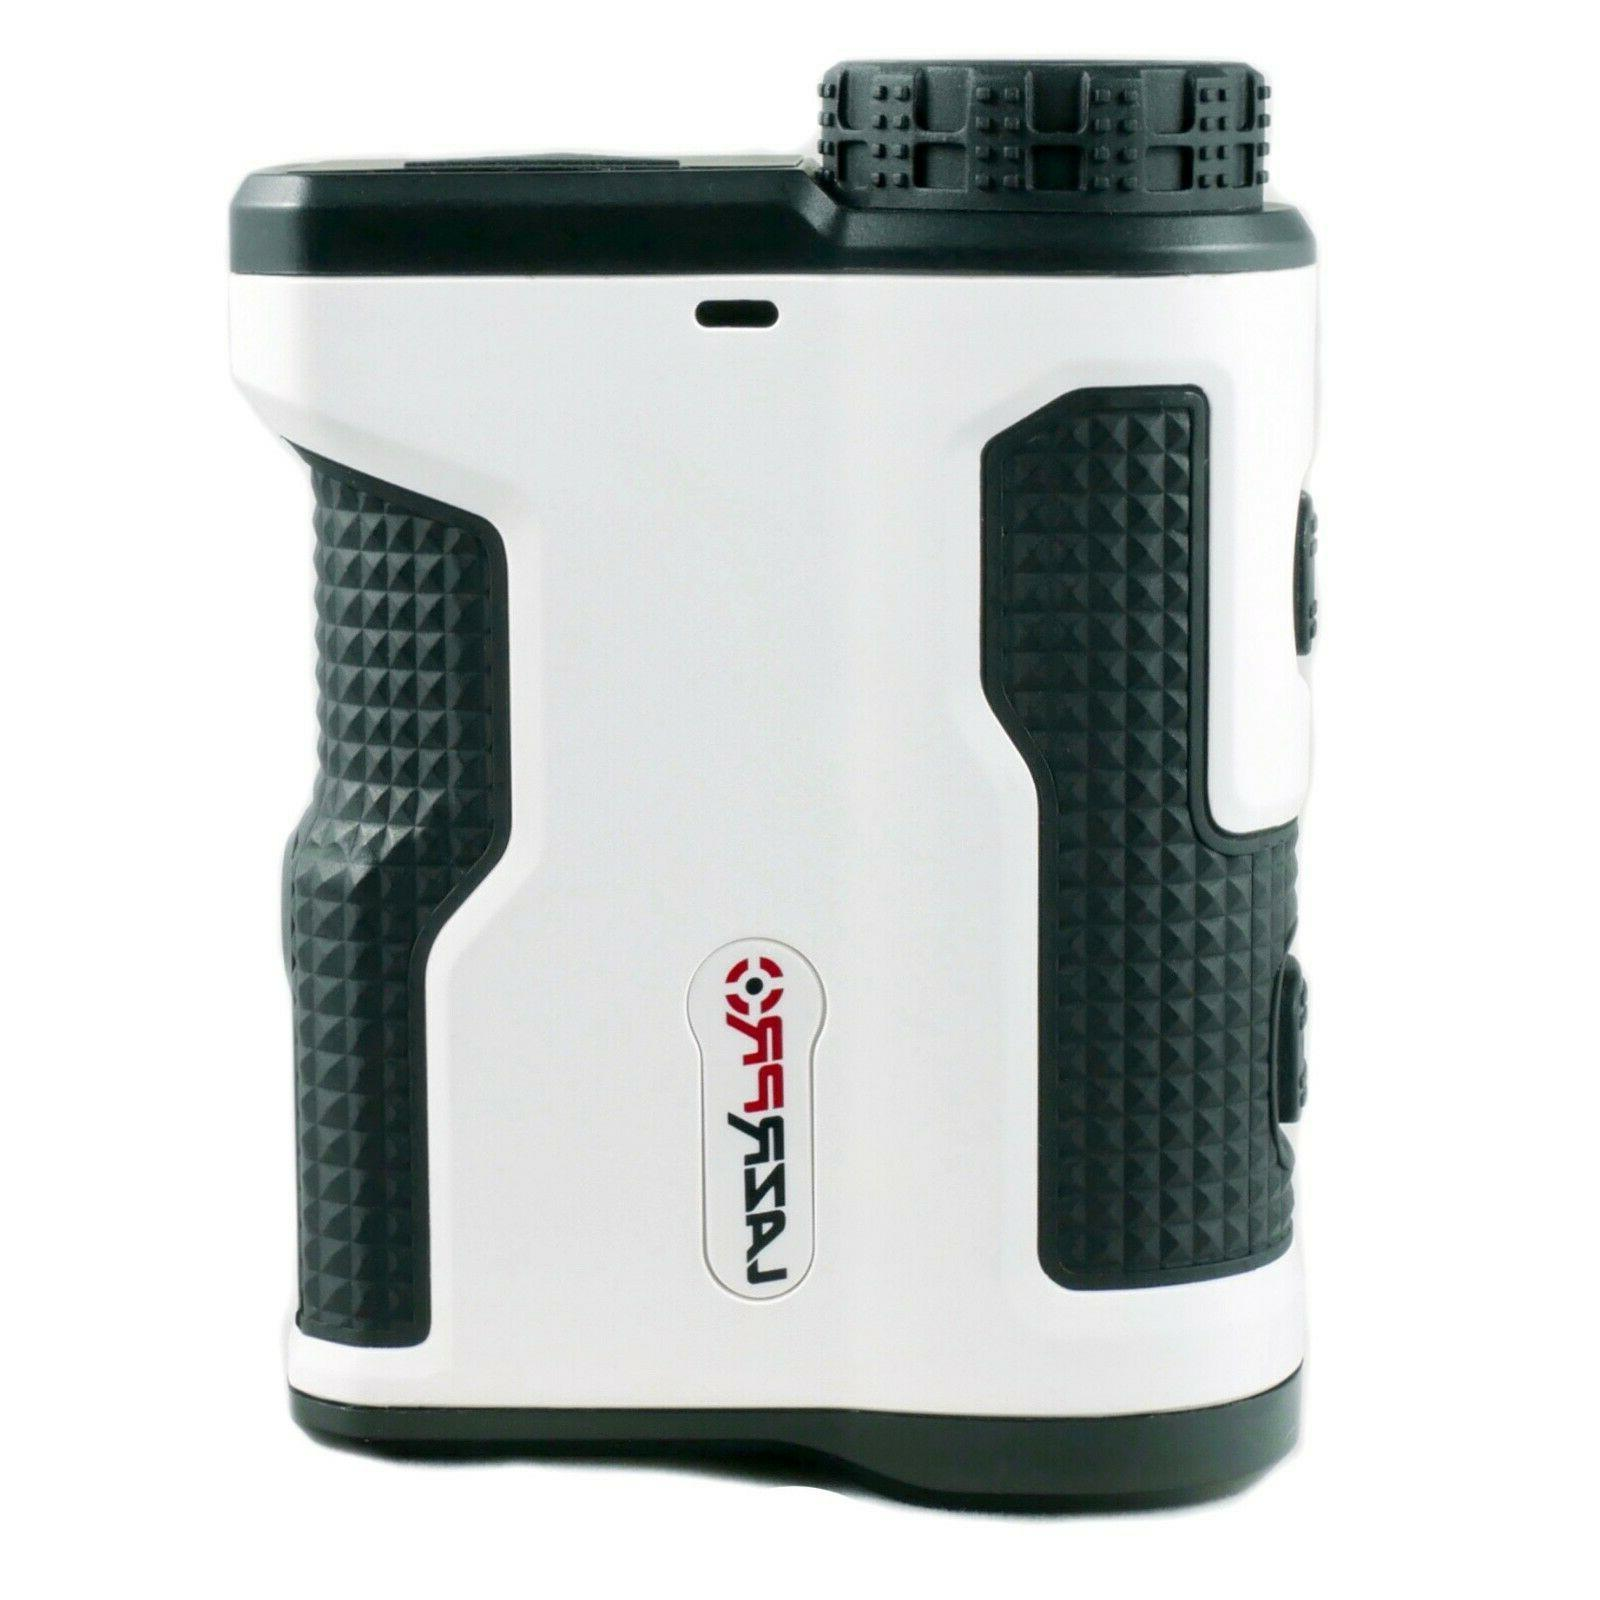 LAZRPRO LASER FINDER 800YD 7X ZOOM